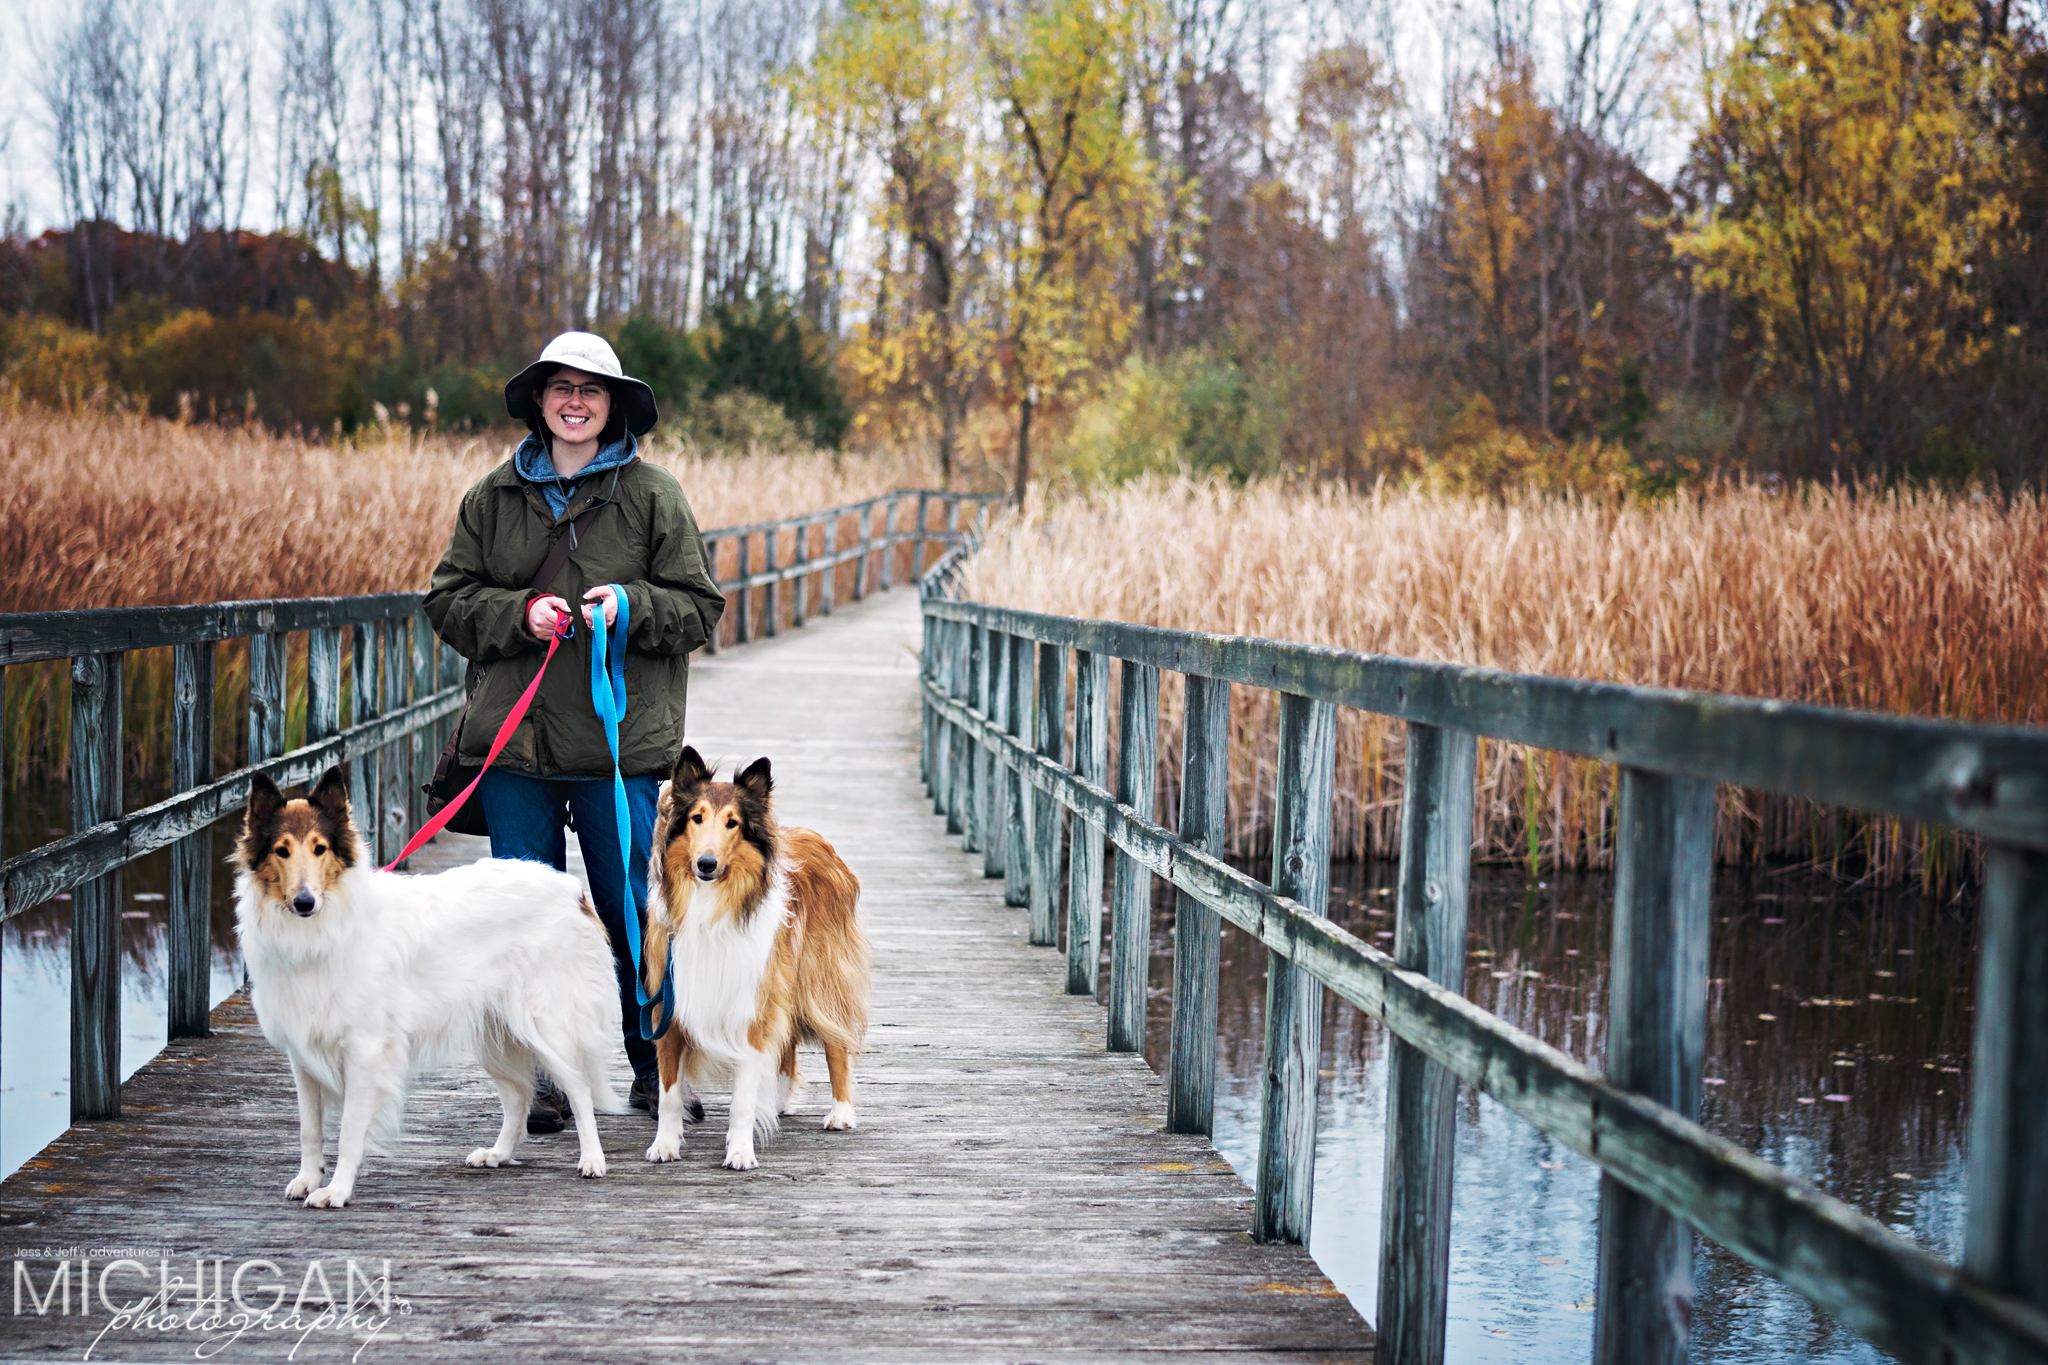 Jess & our pups on a Crosswinds Marsh boardwalk.